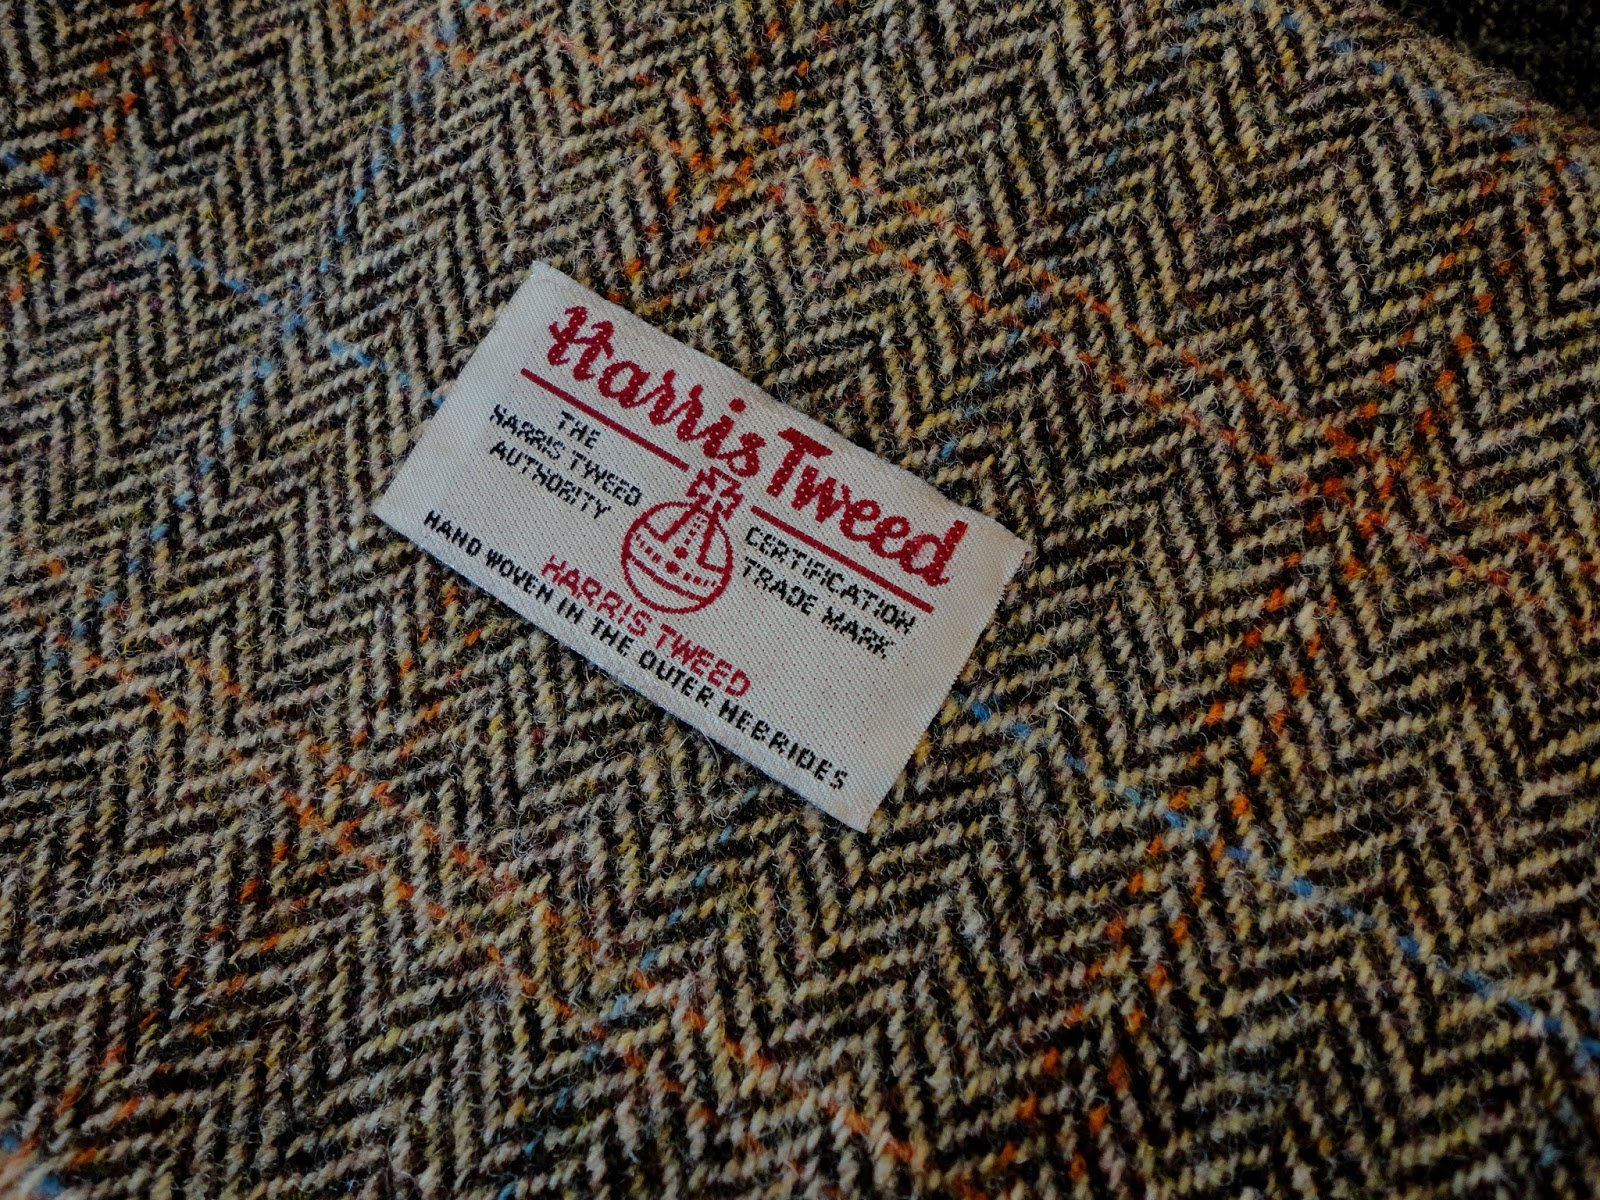 2b3ed2eba489 Harris Tweed has over the last decade been finding it s way into more than  just sports coats and men s suits. I have noticed (and enjoyed) its being  ...